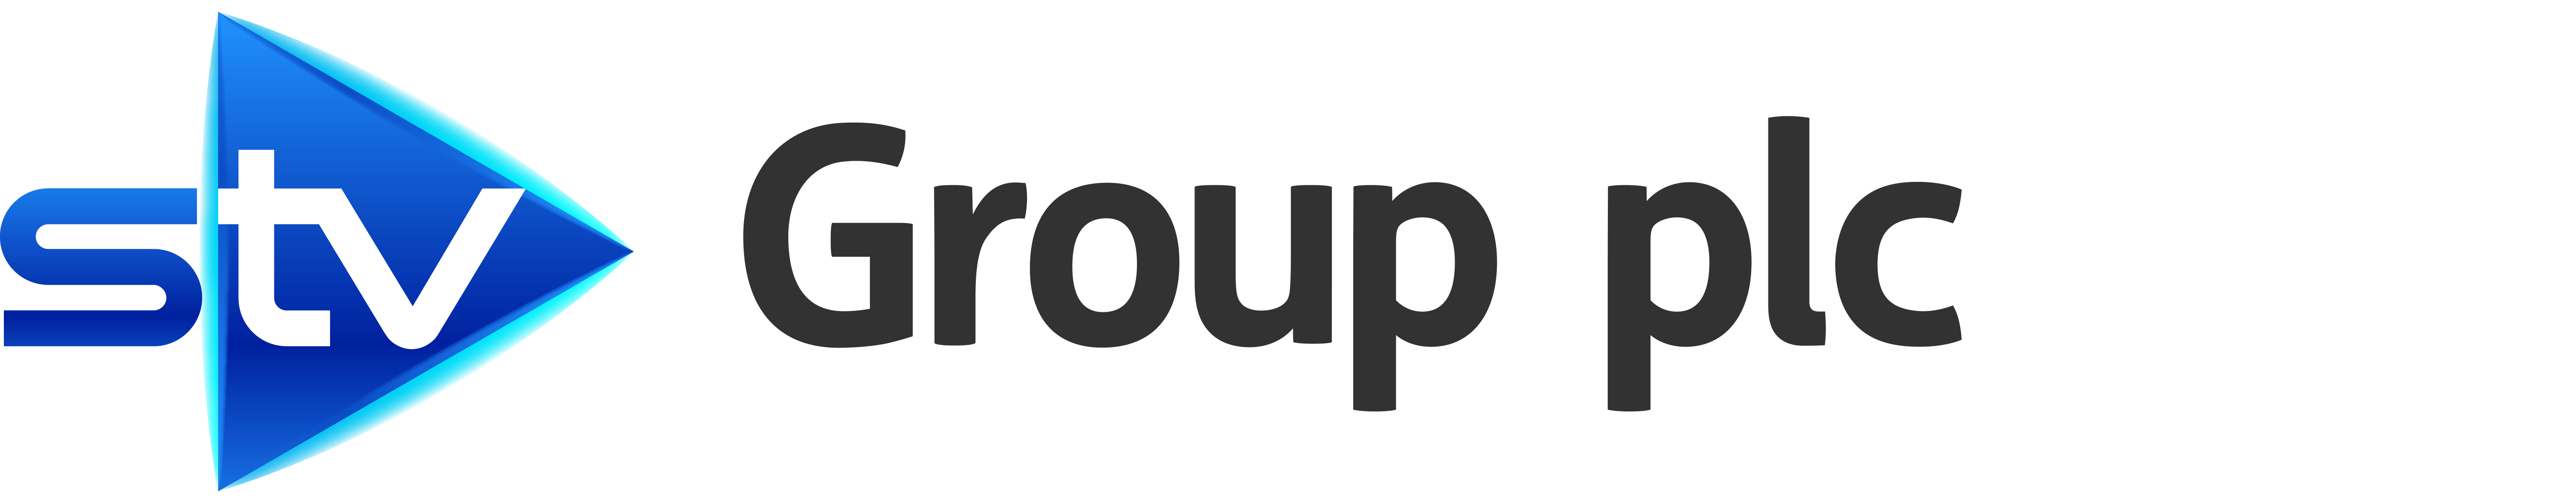 STV GROUP PLC Logo